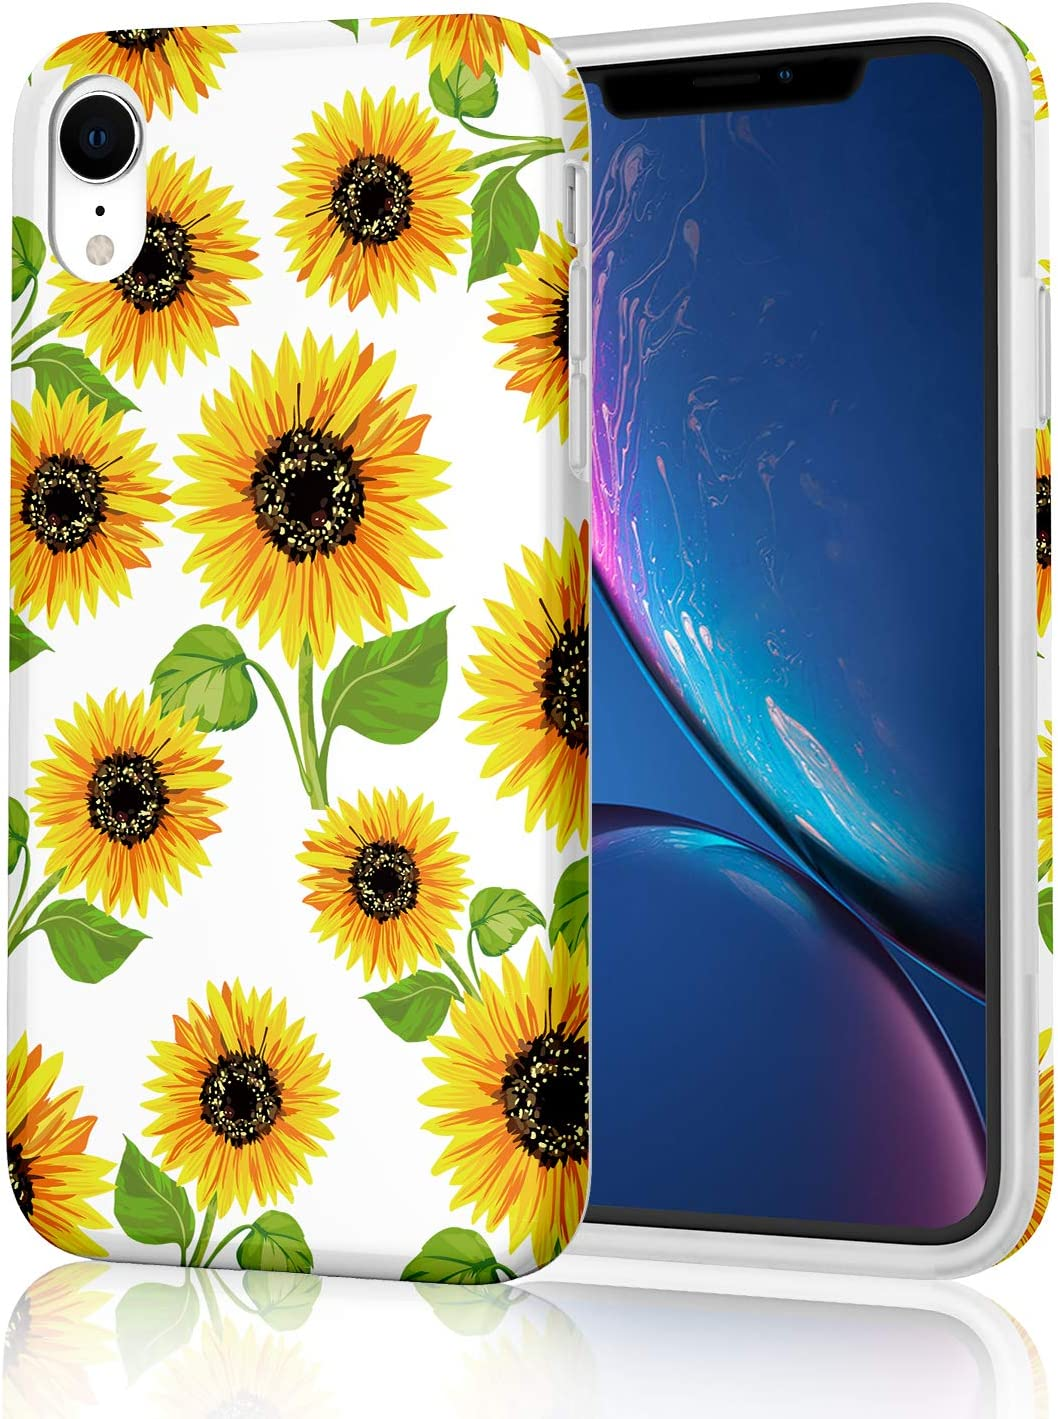 Floral Sunflower Design Cute Protective Phone Case for iPhone XR, Raised Edges Yellow Flowers Pattern Girly Women Soft TPU Glossy Rubber Silicone Skin Cover for iPhone XR